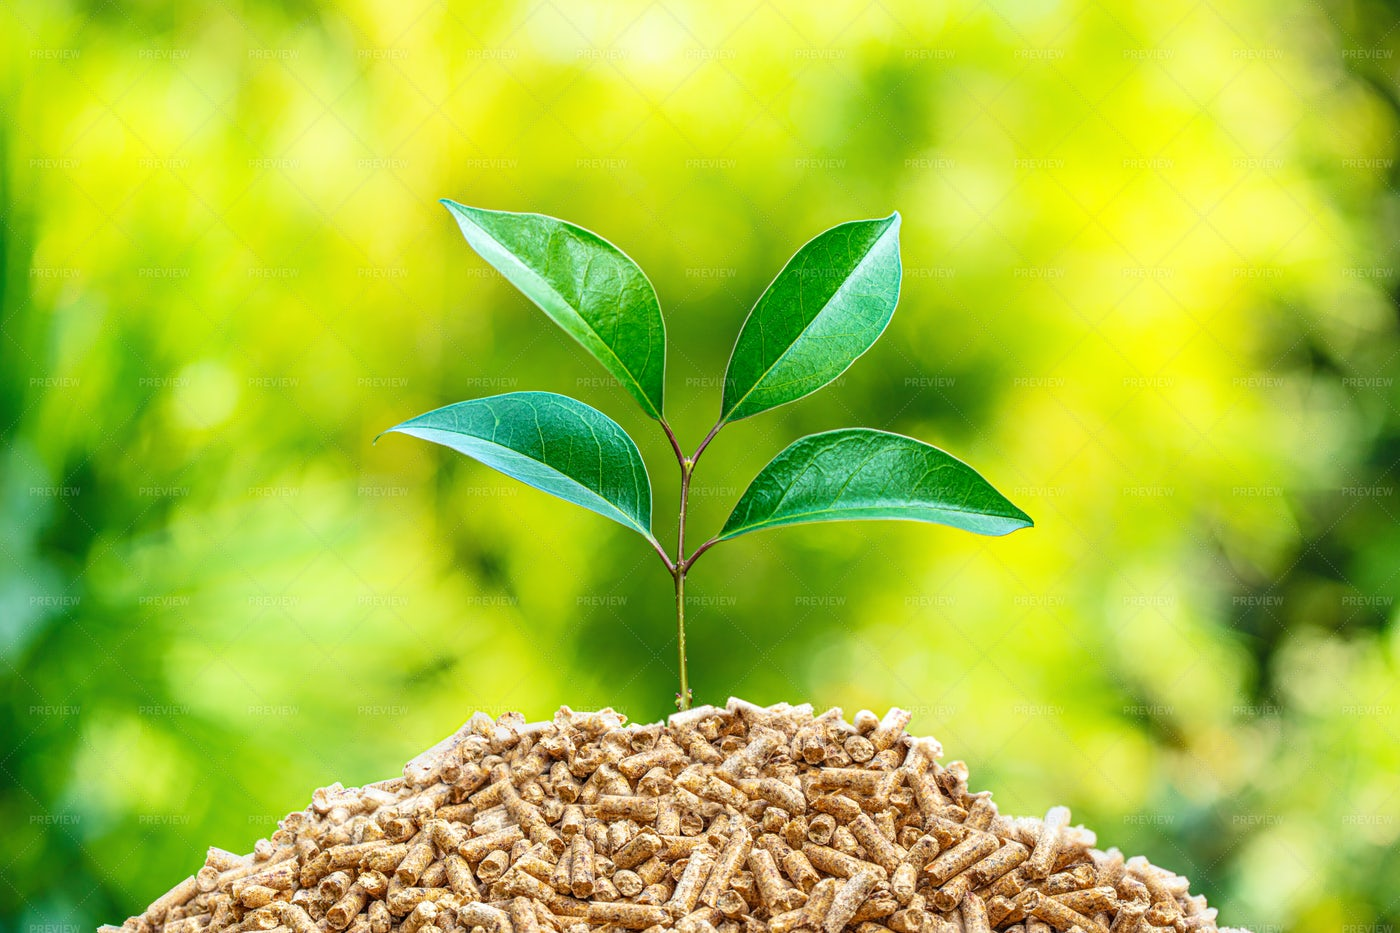 Wood Fuel Pellets And Sprout: Stock Photos